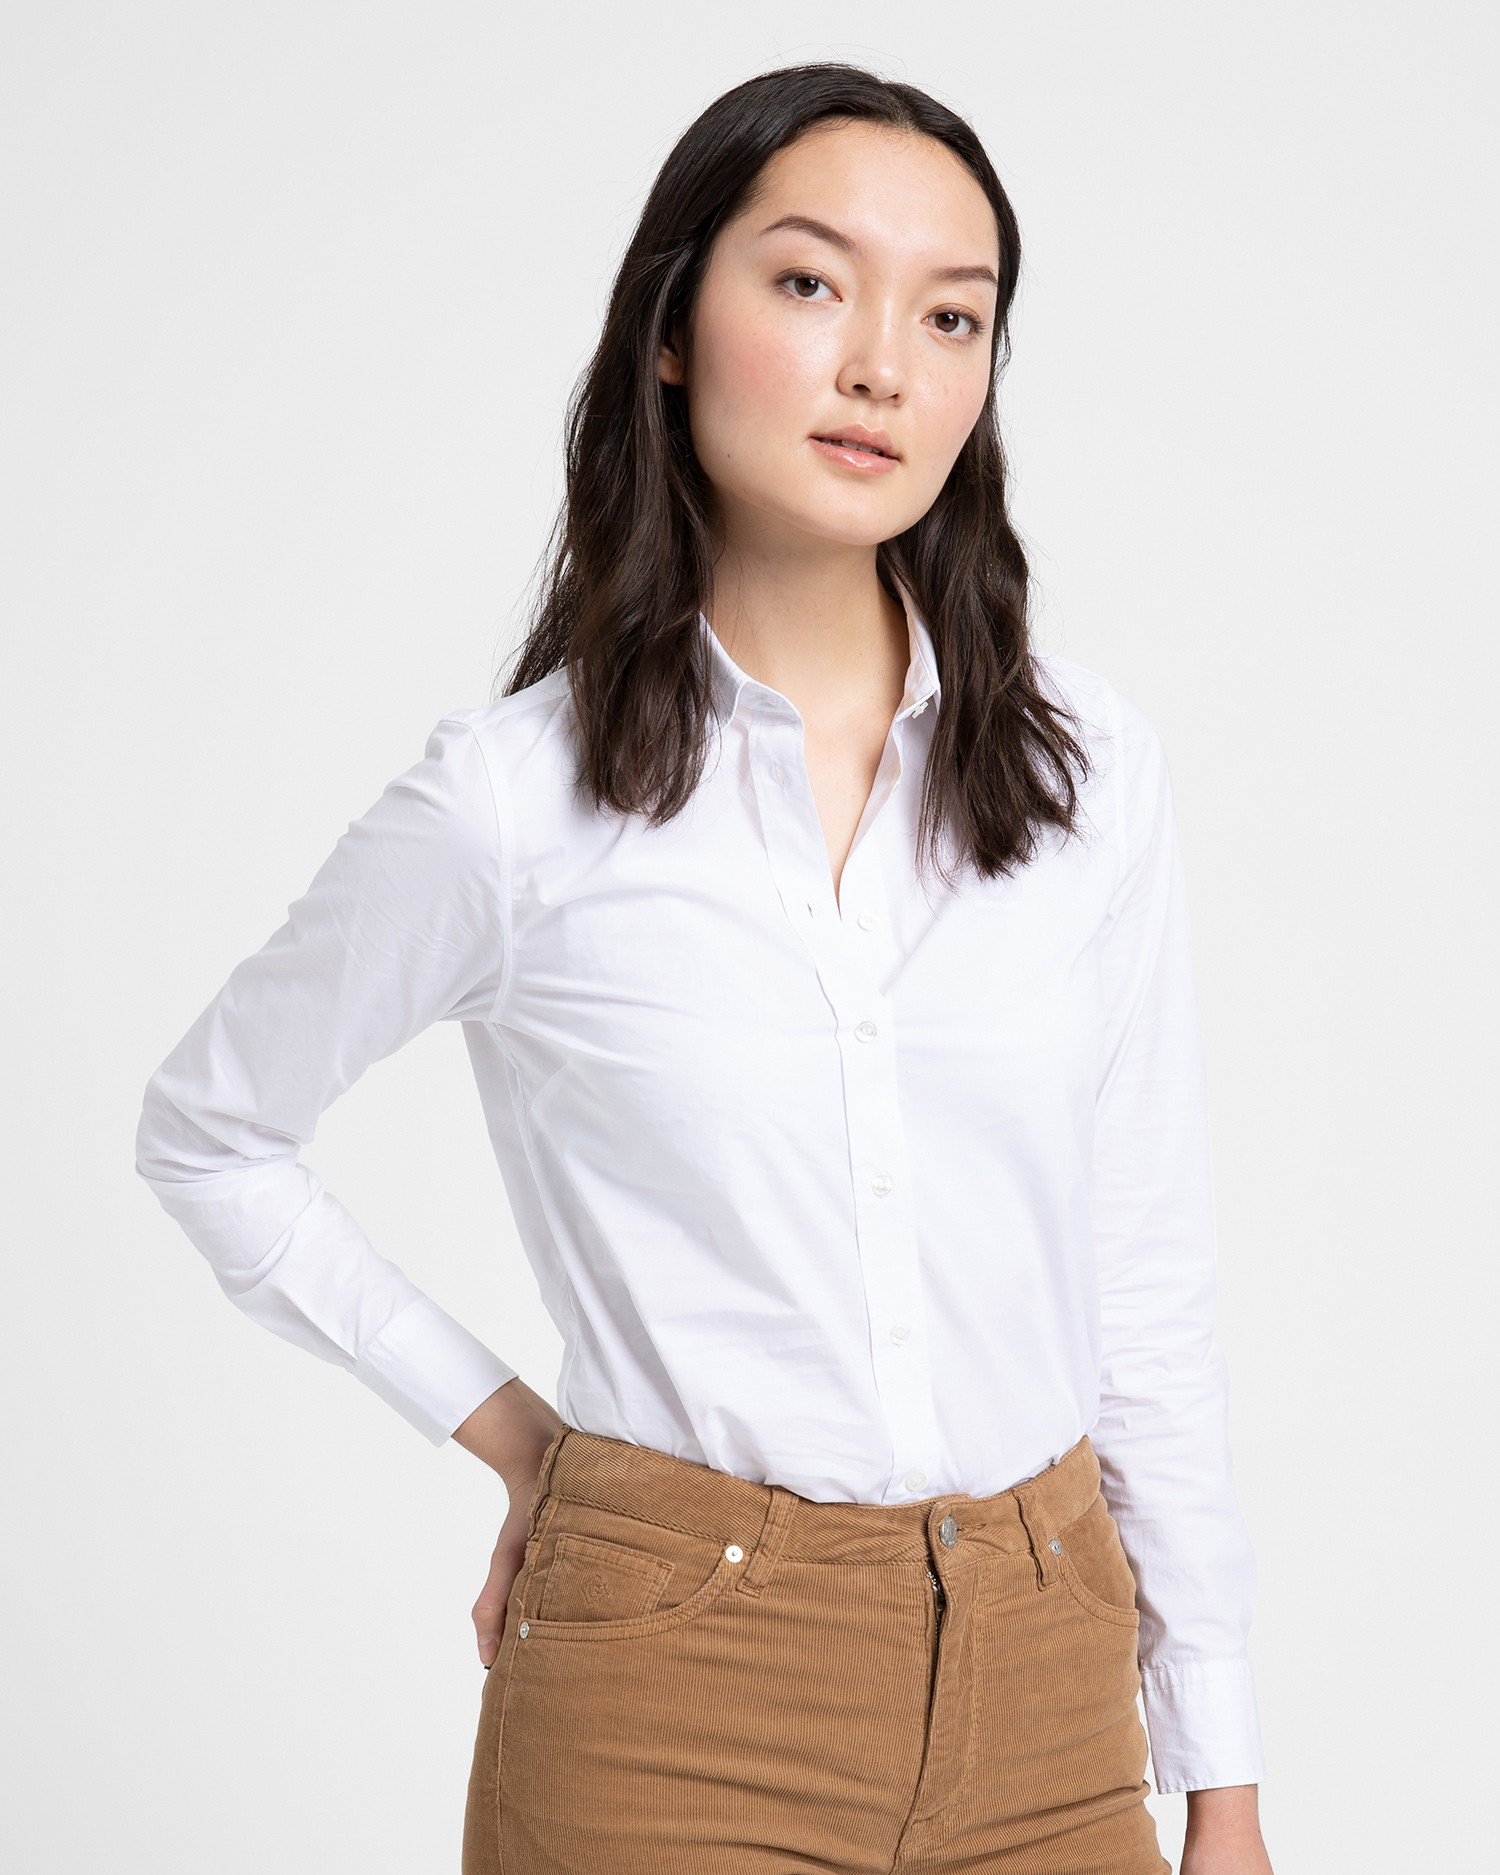 GANT Women's Solid Stretch Broadcloth Shirt - 4350022